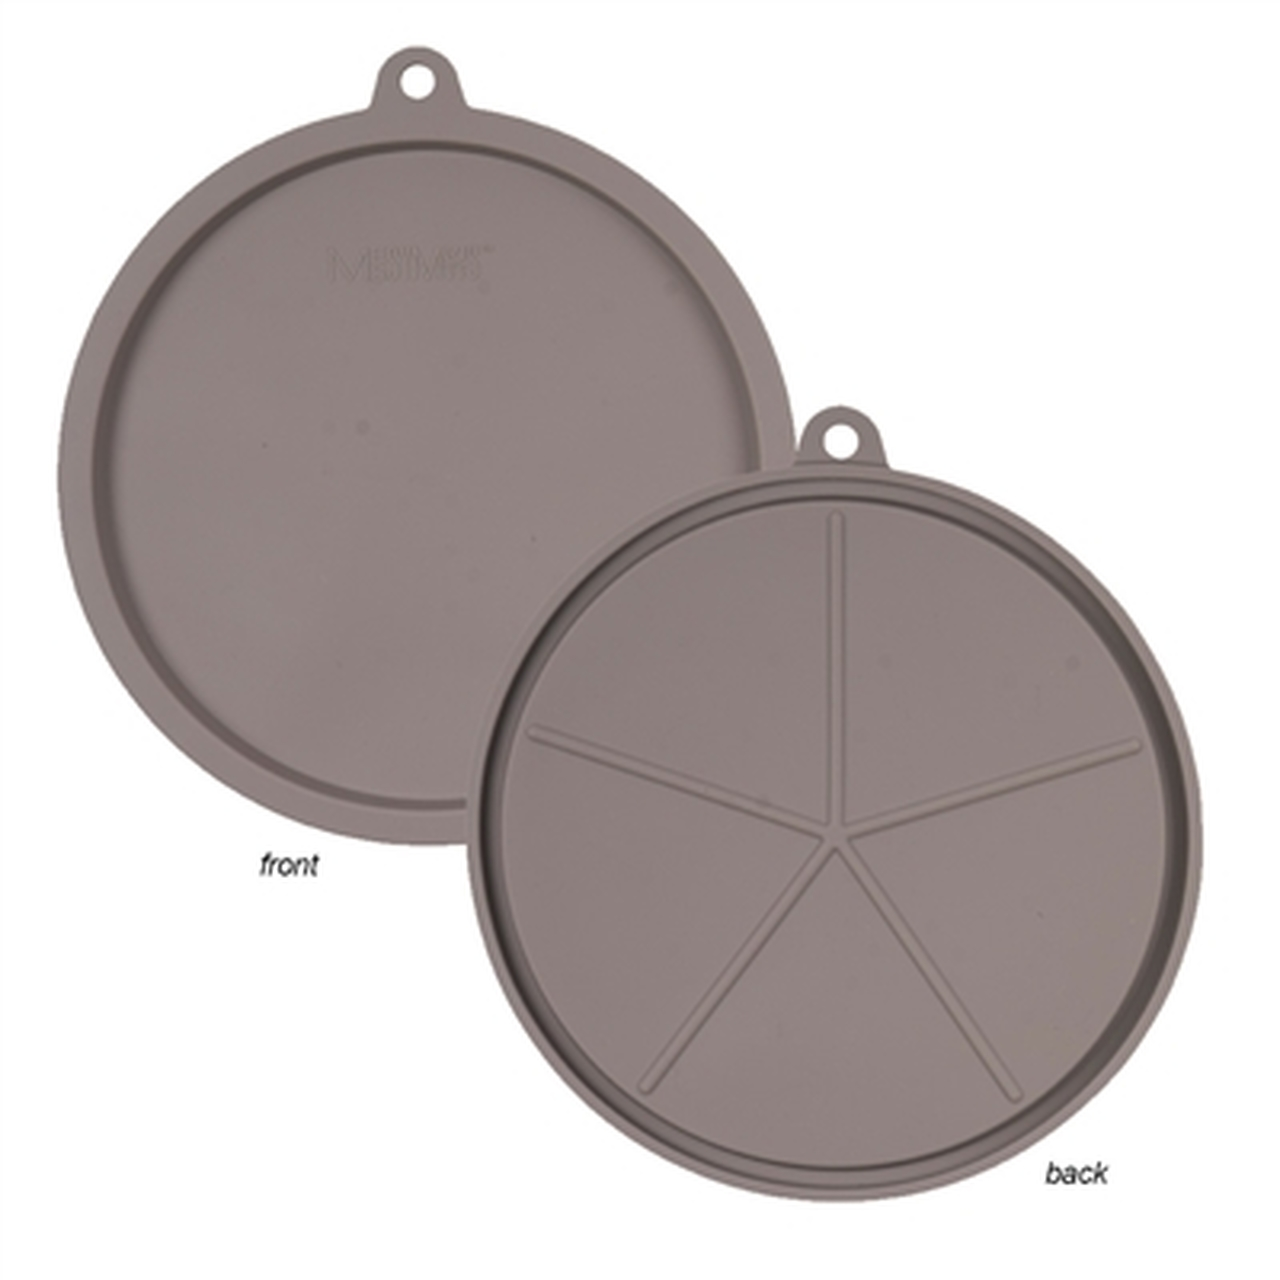 Messy Mutts Silicone Bowl Cover, Gray, Medium